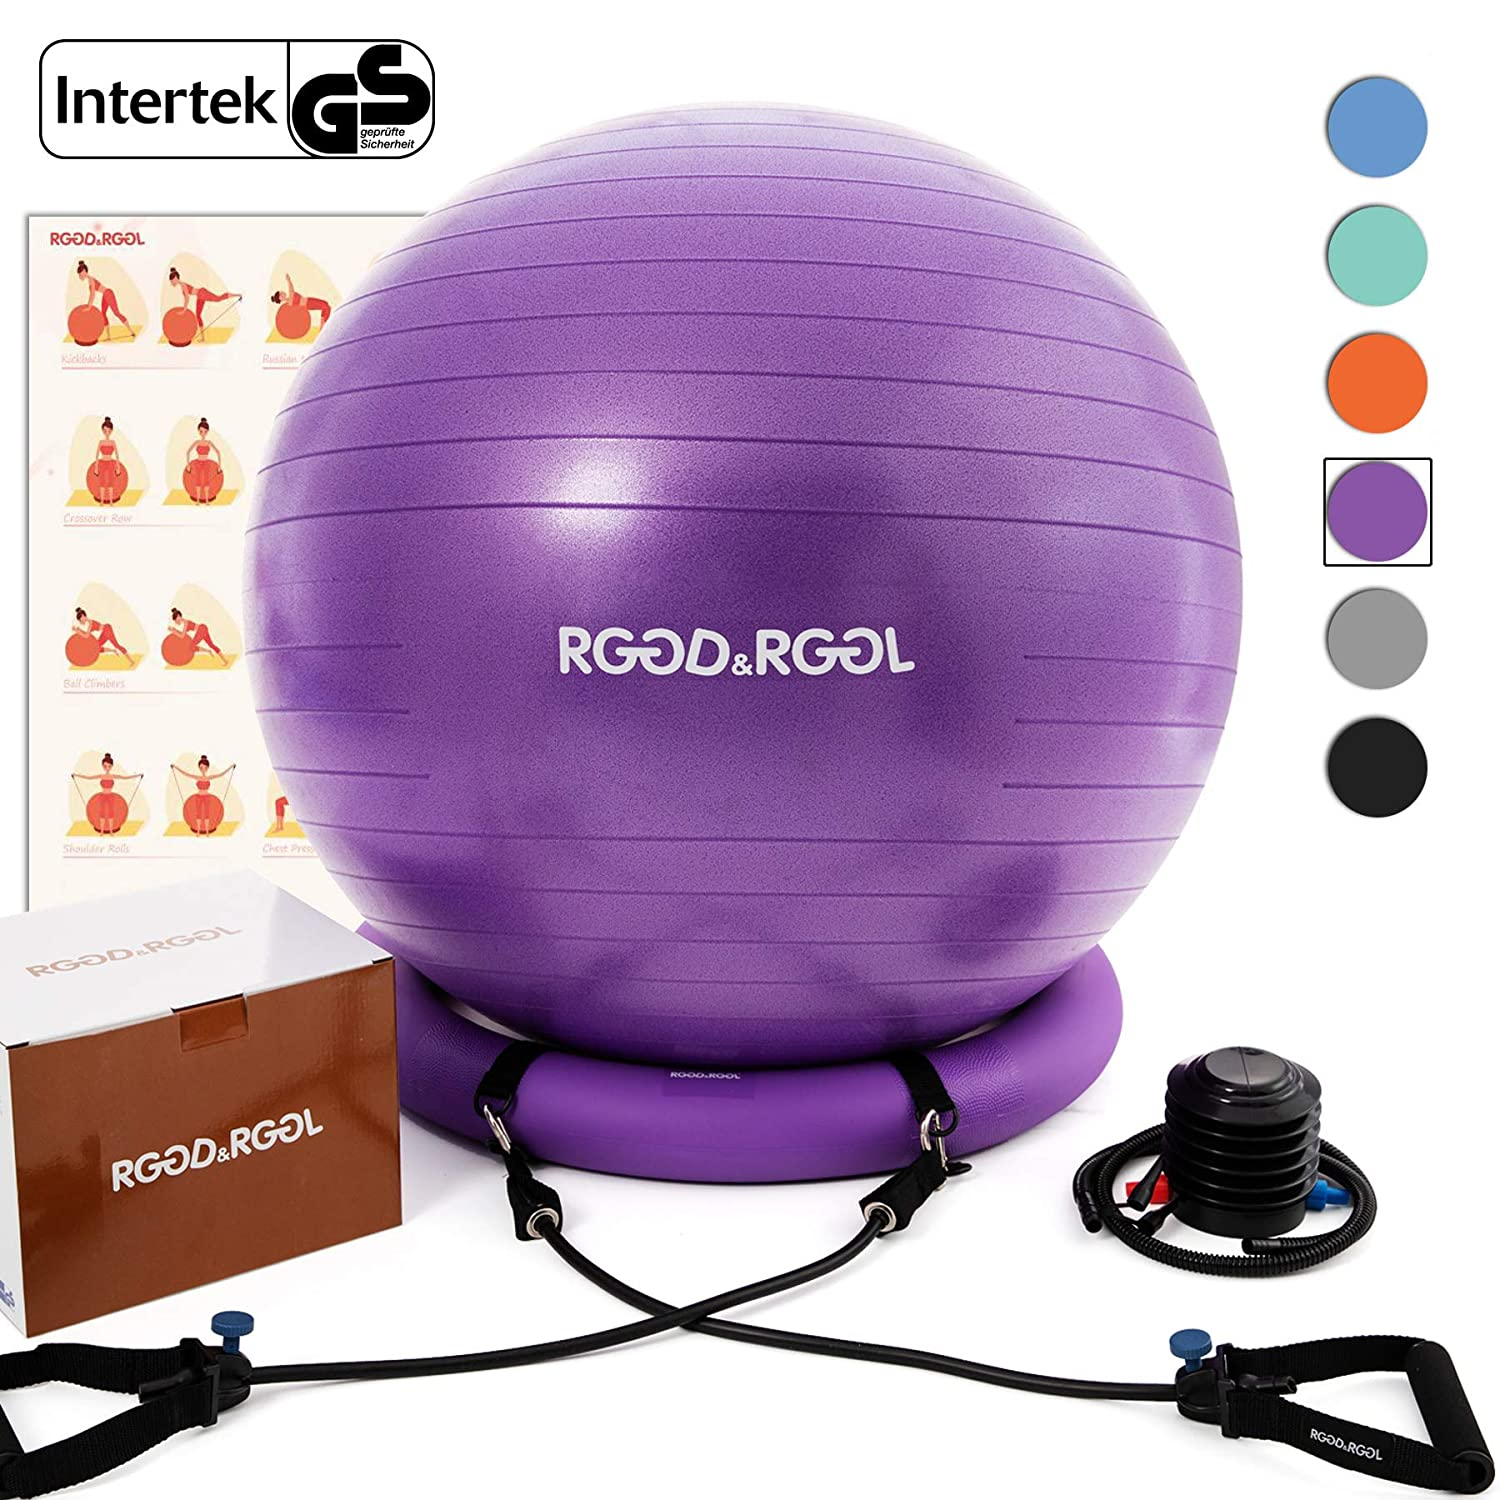 RGGD RGGL Yoga Ball Chair, Exercise Ball with Leak-Proof Design, Stability Ring 2 Adjustable Resistance Bands for Any Fitness Level, 1.5 Times Thicker Swiss Ball for Home Gym Office Pregnancy 65 cm